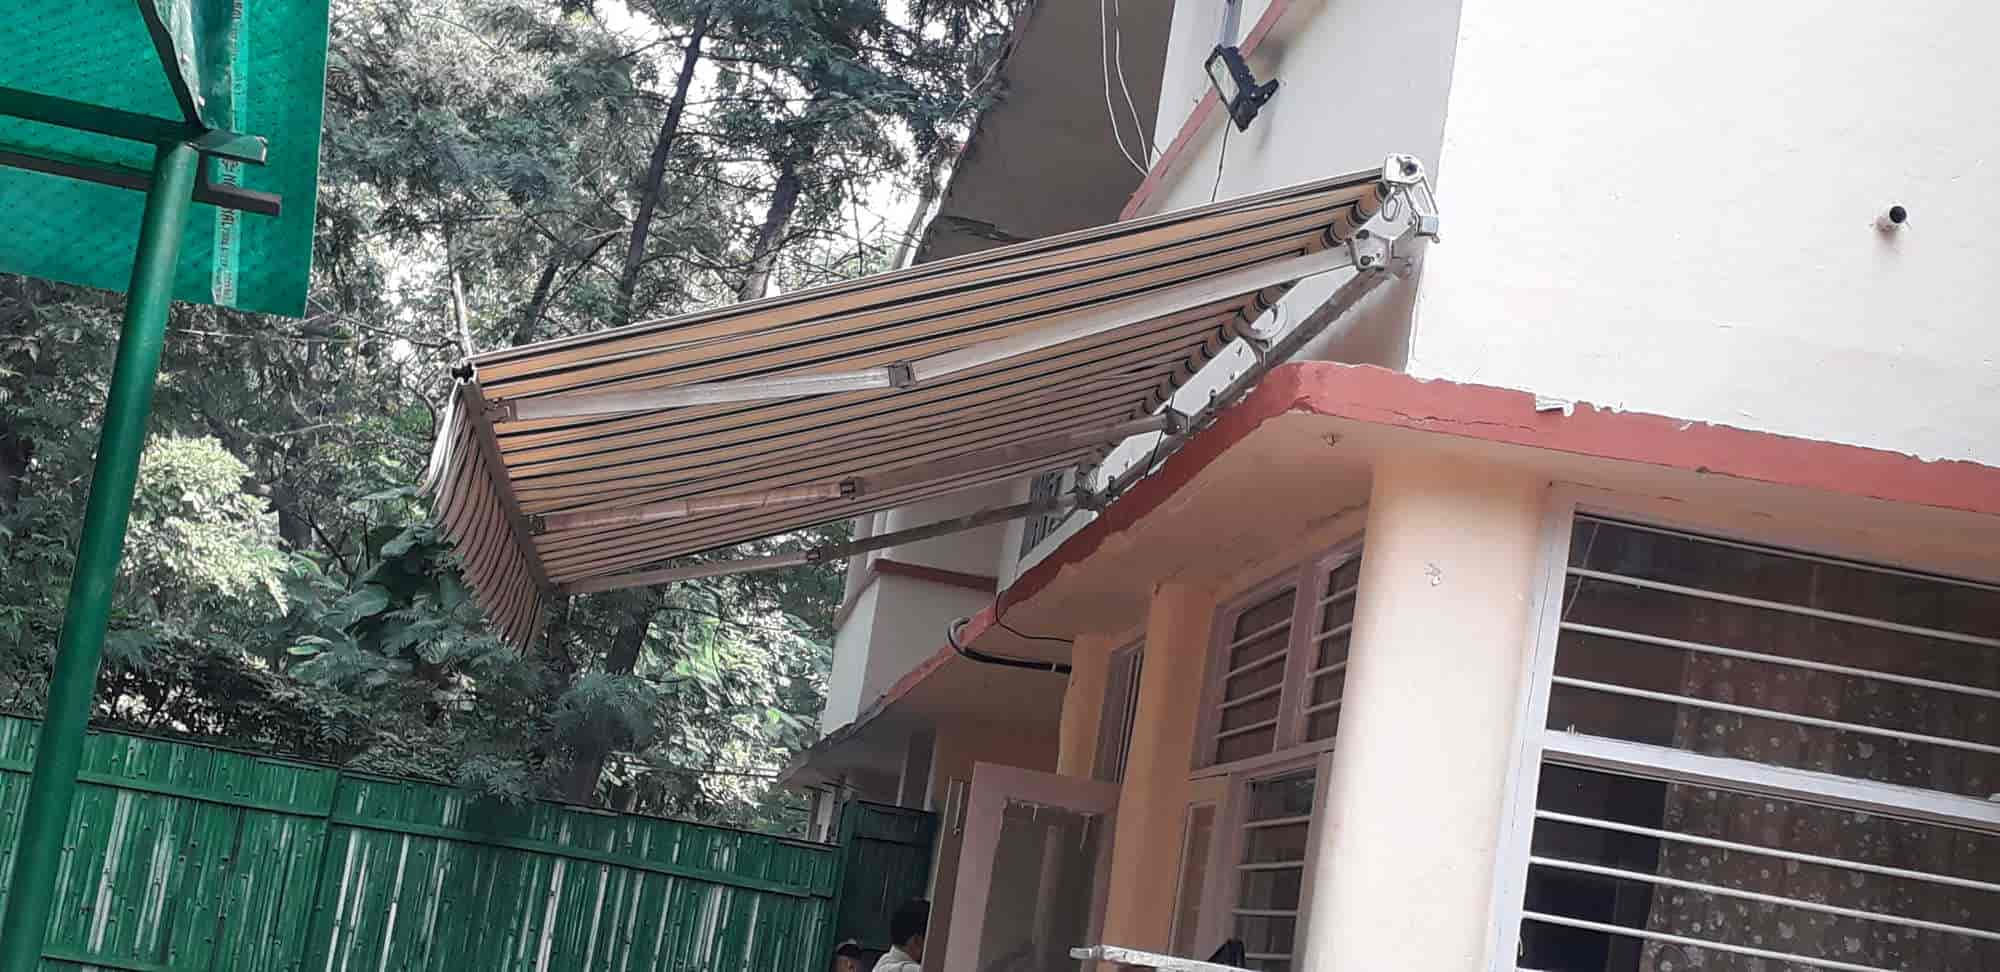 Sachin Awning System Photos, Burari, Delhi- Pictures & Images